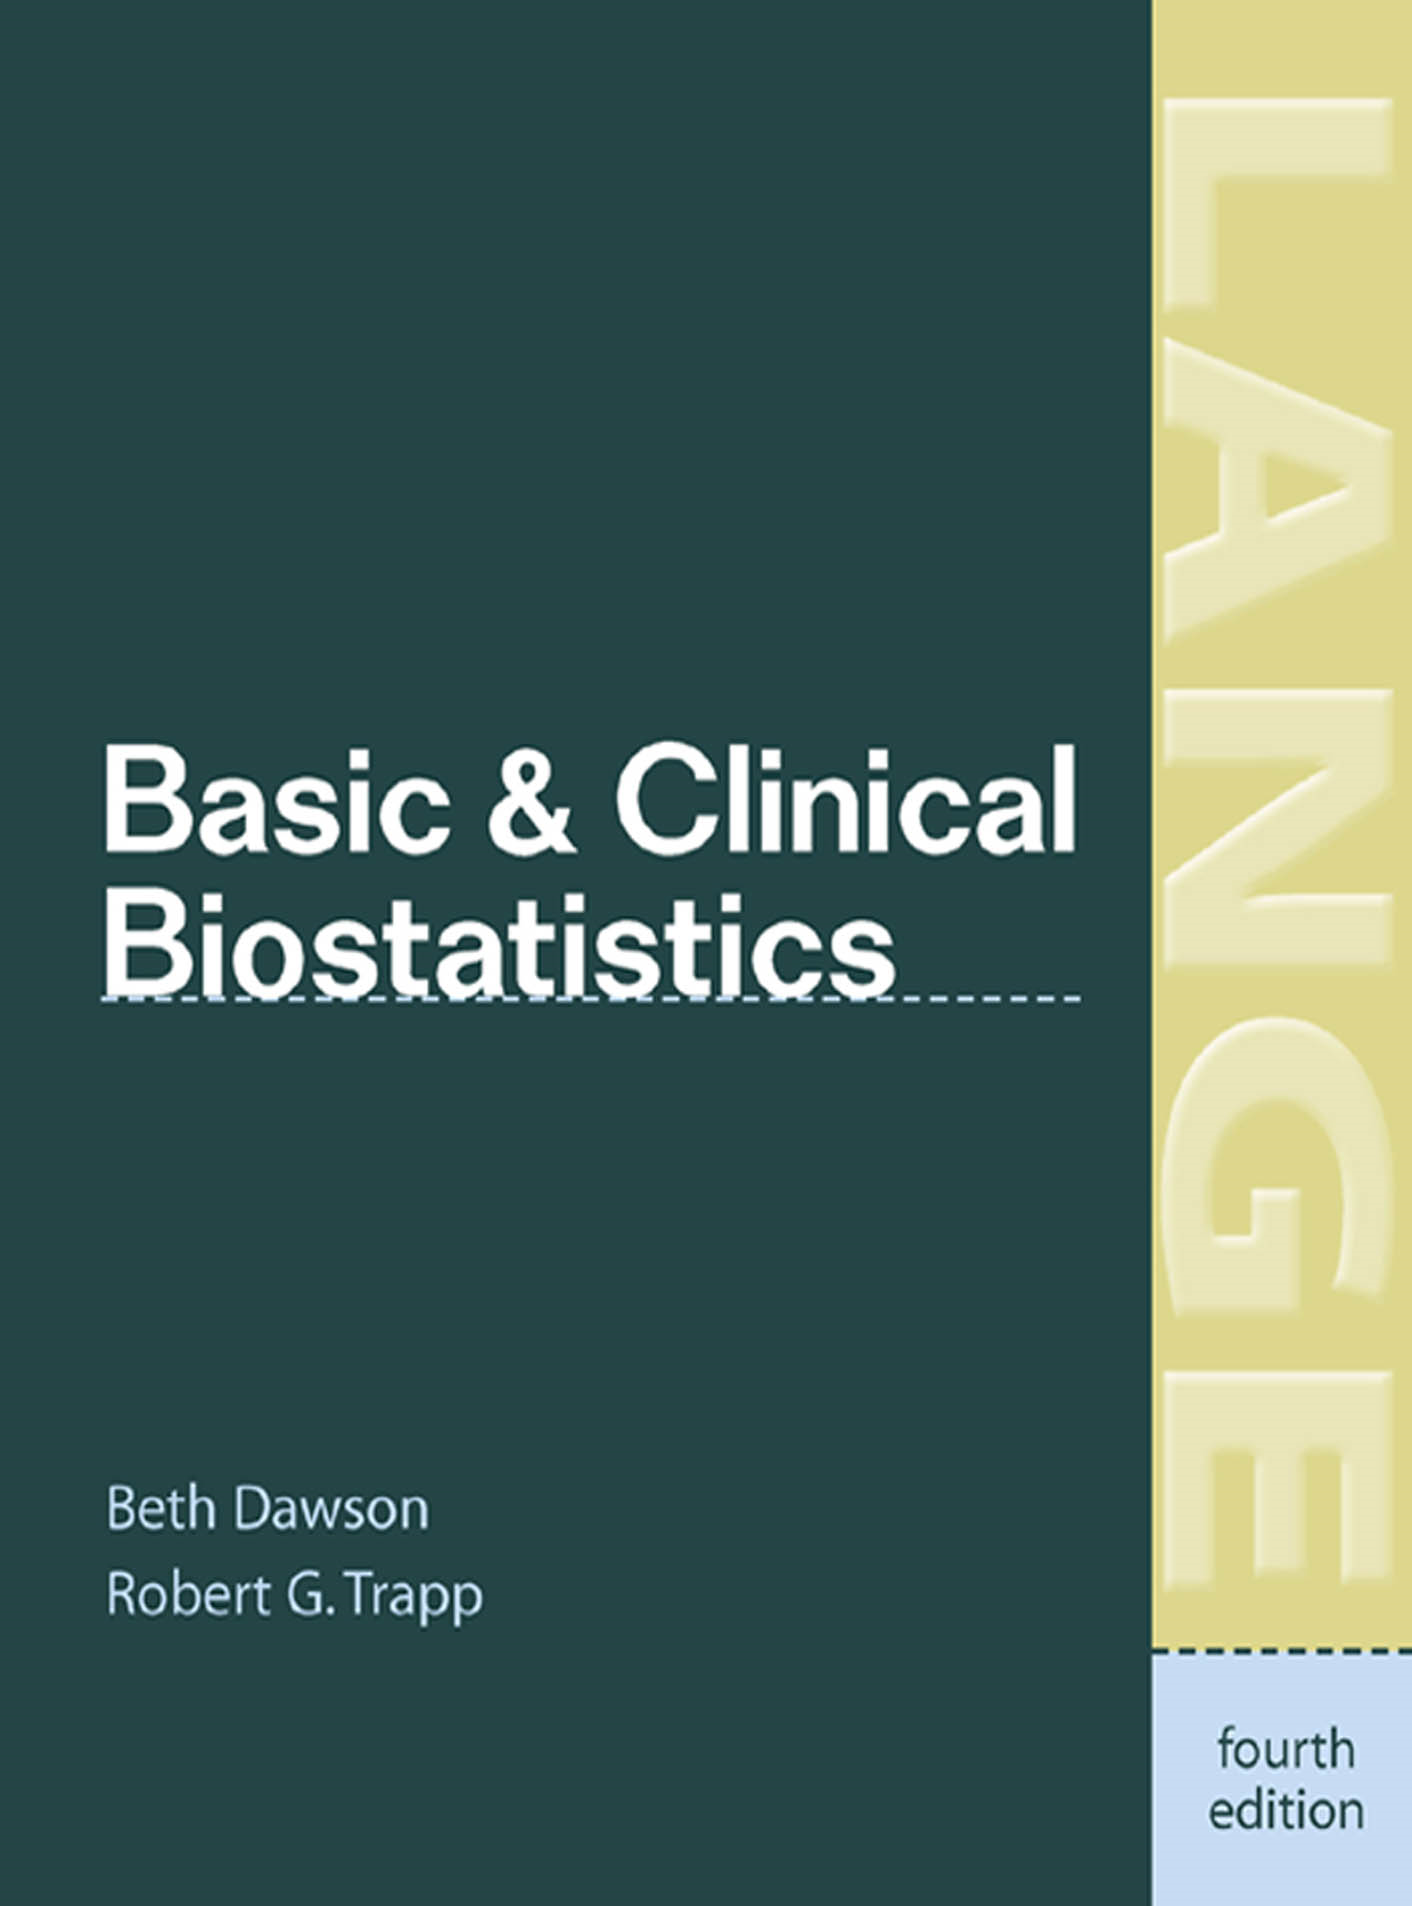 Basic & Clinical Biostatistics: Fourth Edition By:  Robert Trapp,Beth Dawson